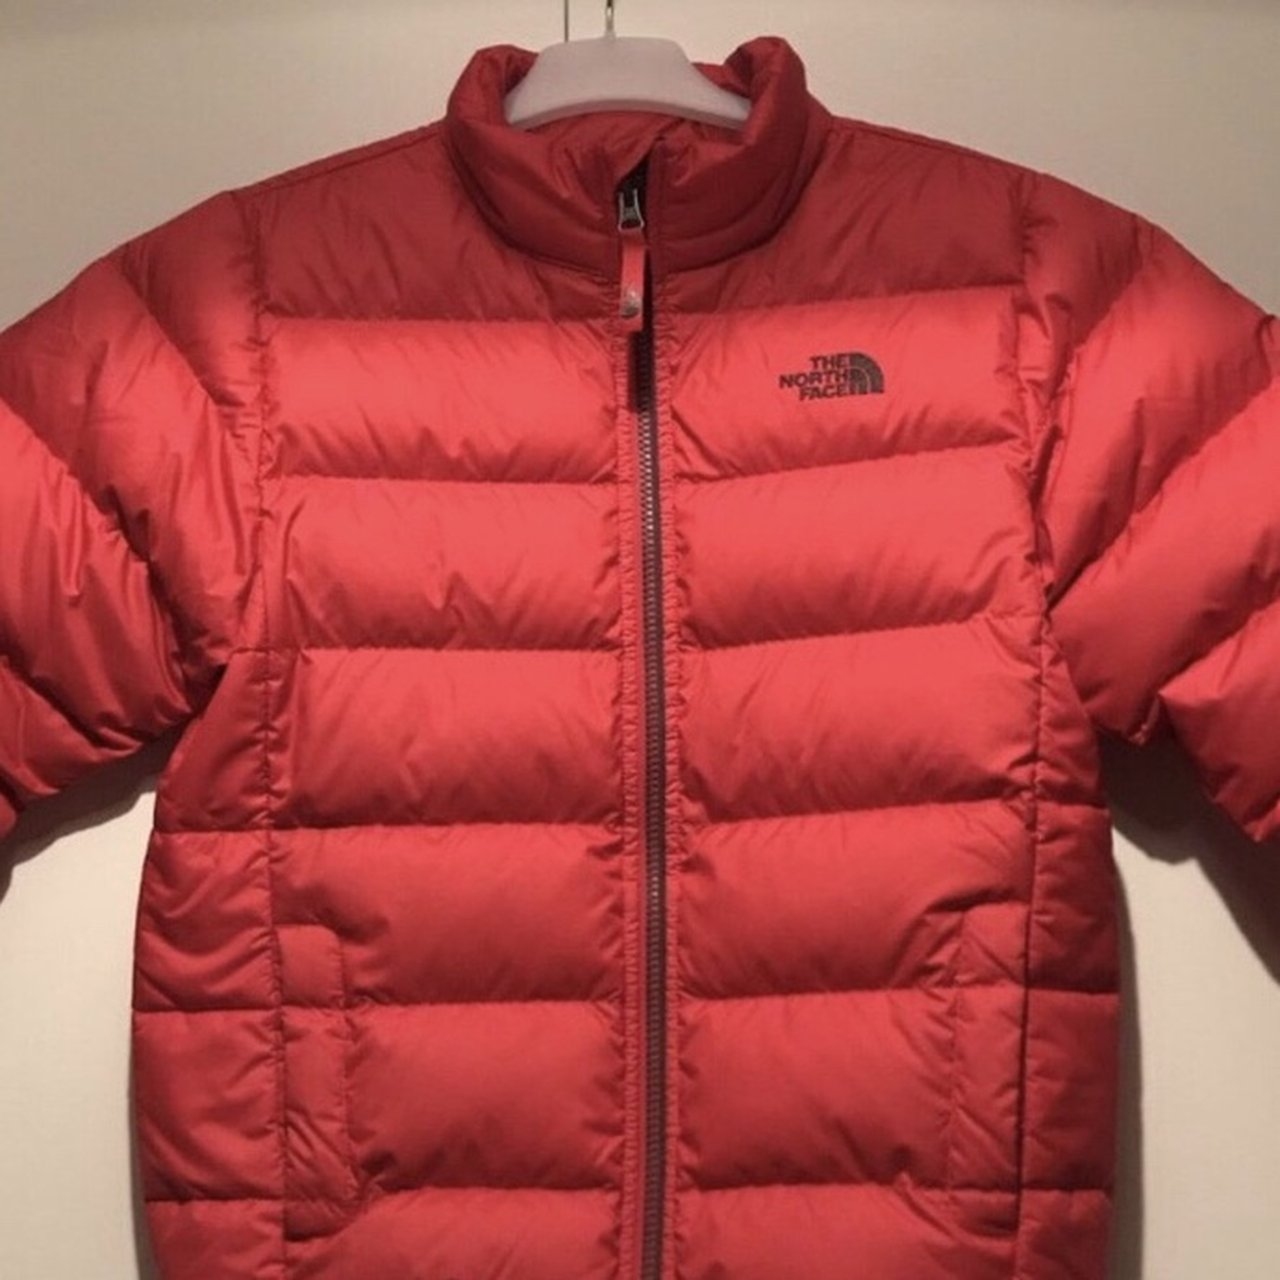 6396947478 Reduced to £70!!! Selling this red THE NORTH FACE puffer has - Depop